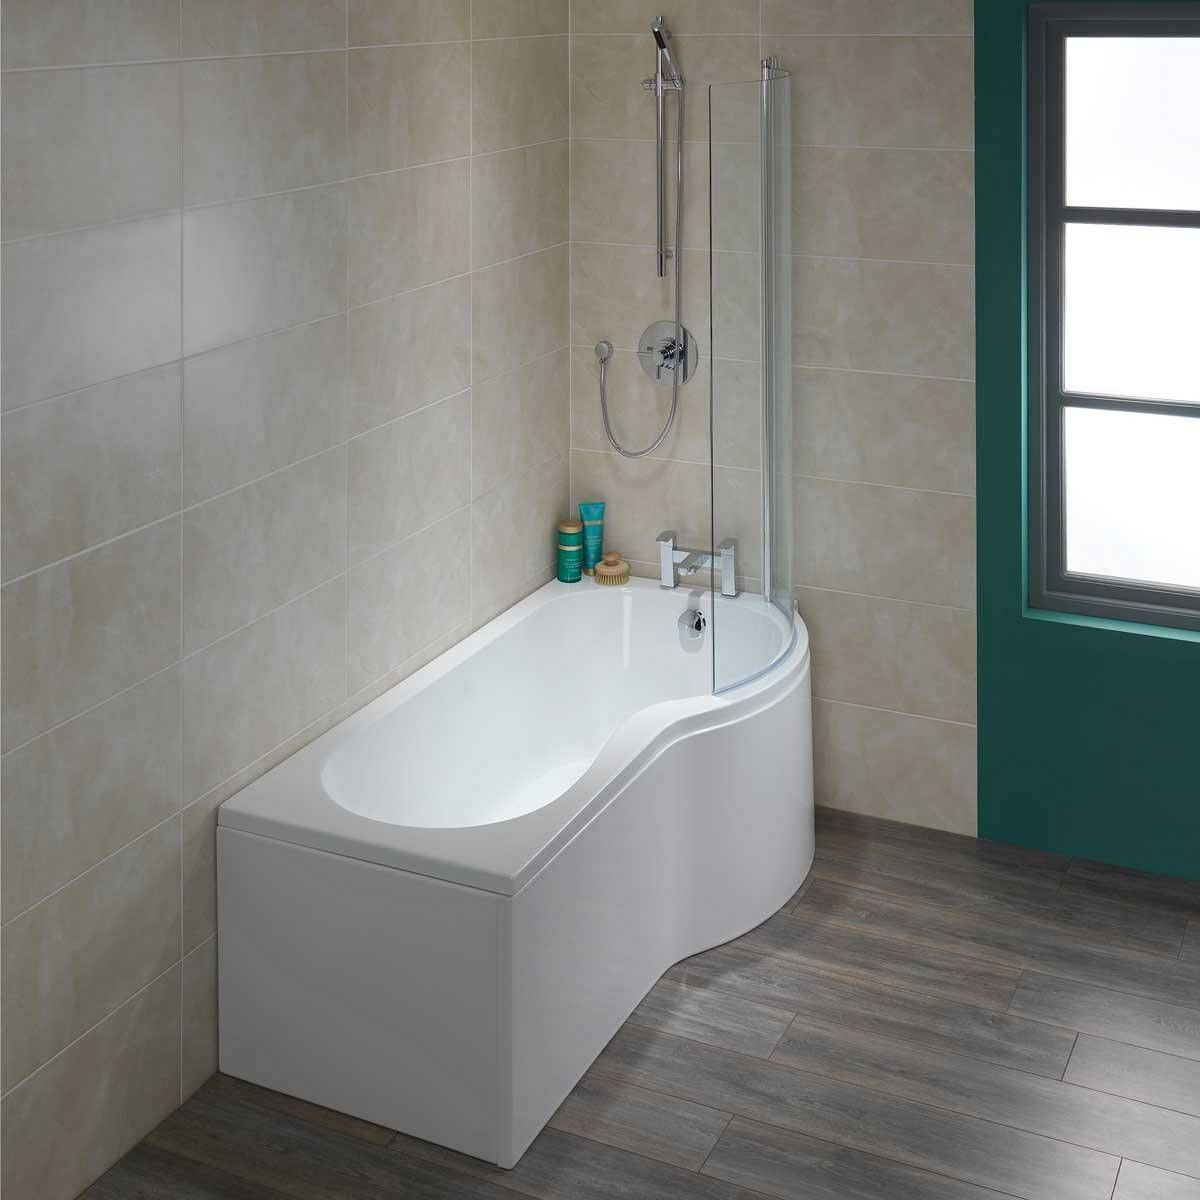 Small Bathroom Tub And Shower Combo: P Shape Shower Bath 1700 RH & Screen Now Only £249.00 From